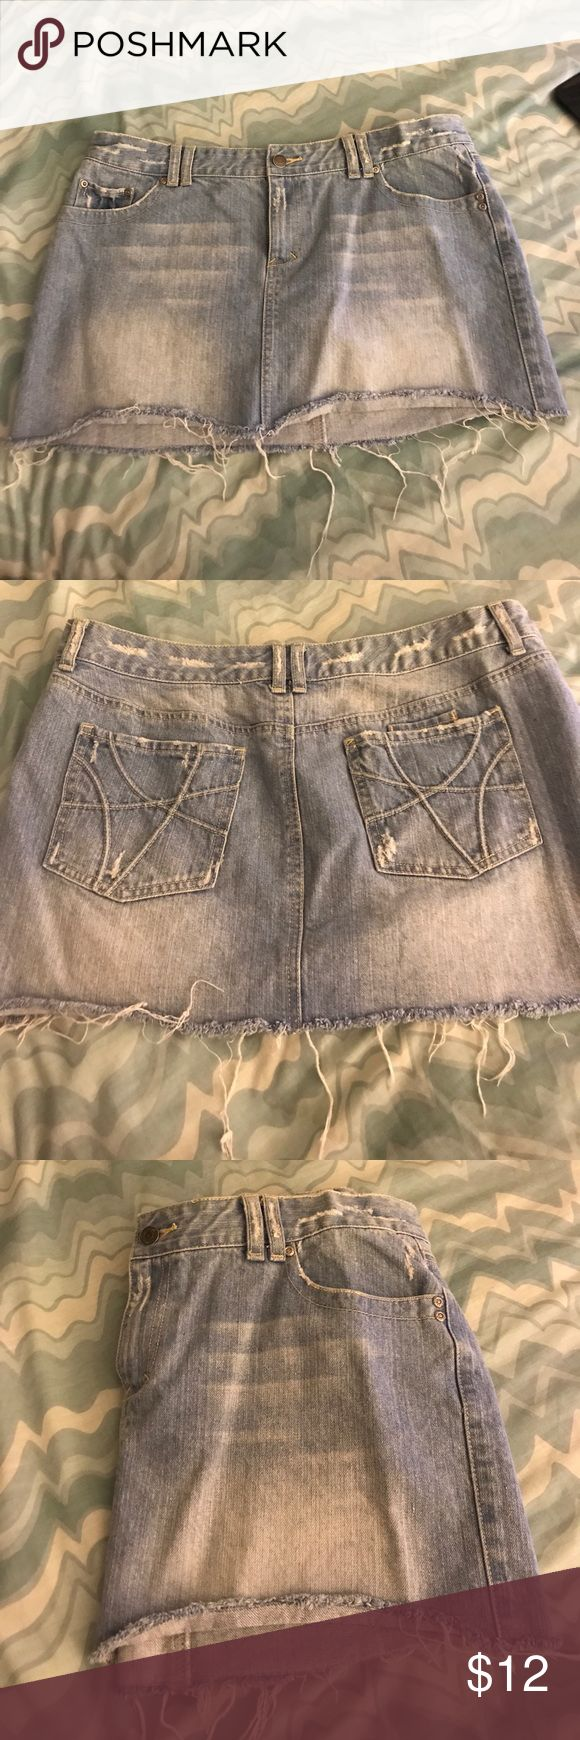 Distressed Jean Skirt size 11/12 Aeropostale distressed mini jean skirt. The perfect skirt for summer . Its a size 11/12 and 100% cotton. Hardly worn. Aeropostale Skirts Mini